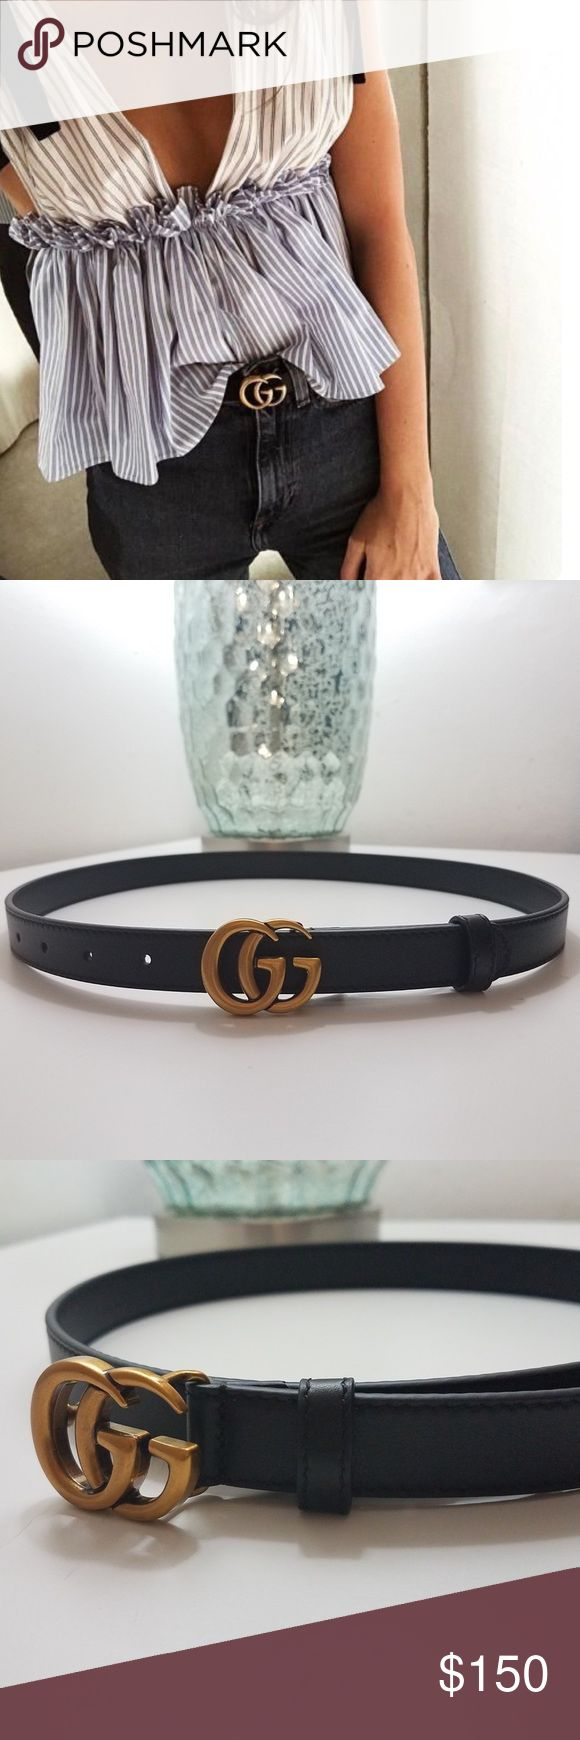 """Gucci Belt This thin Gucci belt made in smooth leather with double G buckle. This was an awesome addition to my wardrobe but it became a bit too small. Just purchased a larger size and this one needs a new home. To all my small waisted ladies, this is a euro size 80 which fits approximately a 25-27 waist. *priced to sell, half off retail price. Comes with dust bag   Antique brass hardware Double G buckle Hip or waist belt .5"""" width Made in Italy Gucci Accessories Belts"""